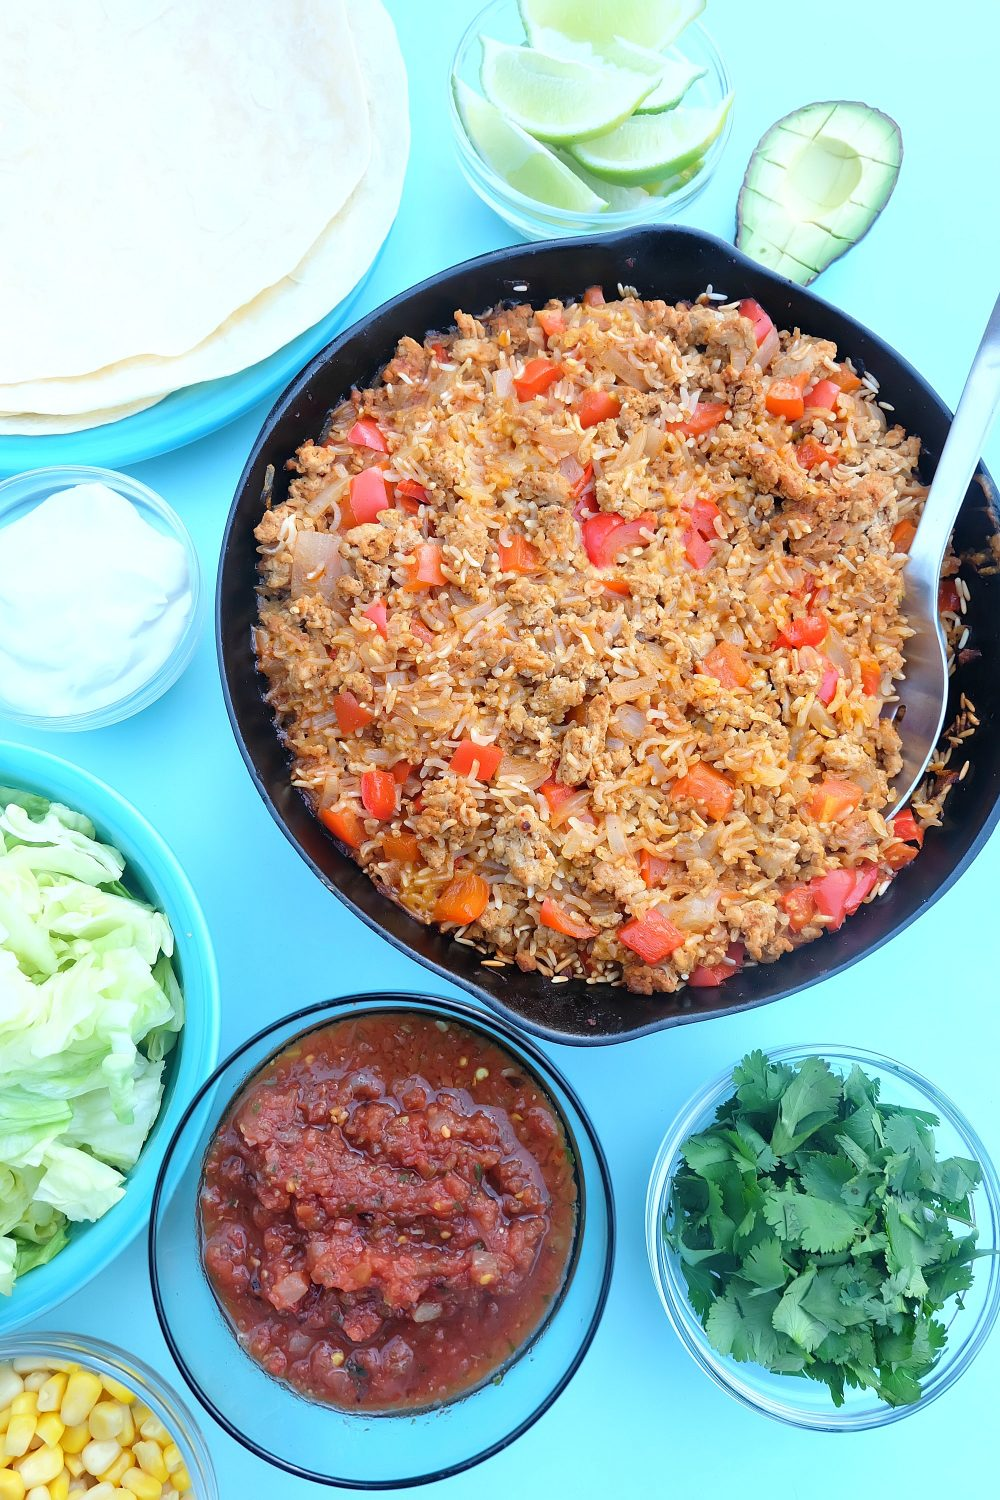 Looking for a quick and easy, one pan healthy dinner idea that will feed a crowd? This ground turkey and rice Mexican casserole recipe only takes 10 minutes to prep, then you pop it in the oven. Perfect for filling tacos, burritos or using as a topping for taco salad! A healthy, delicious and family friendly meal idea! #MakeItWithTurkey #Recipe #Mexican #Turkey #OnePan